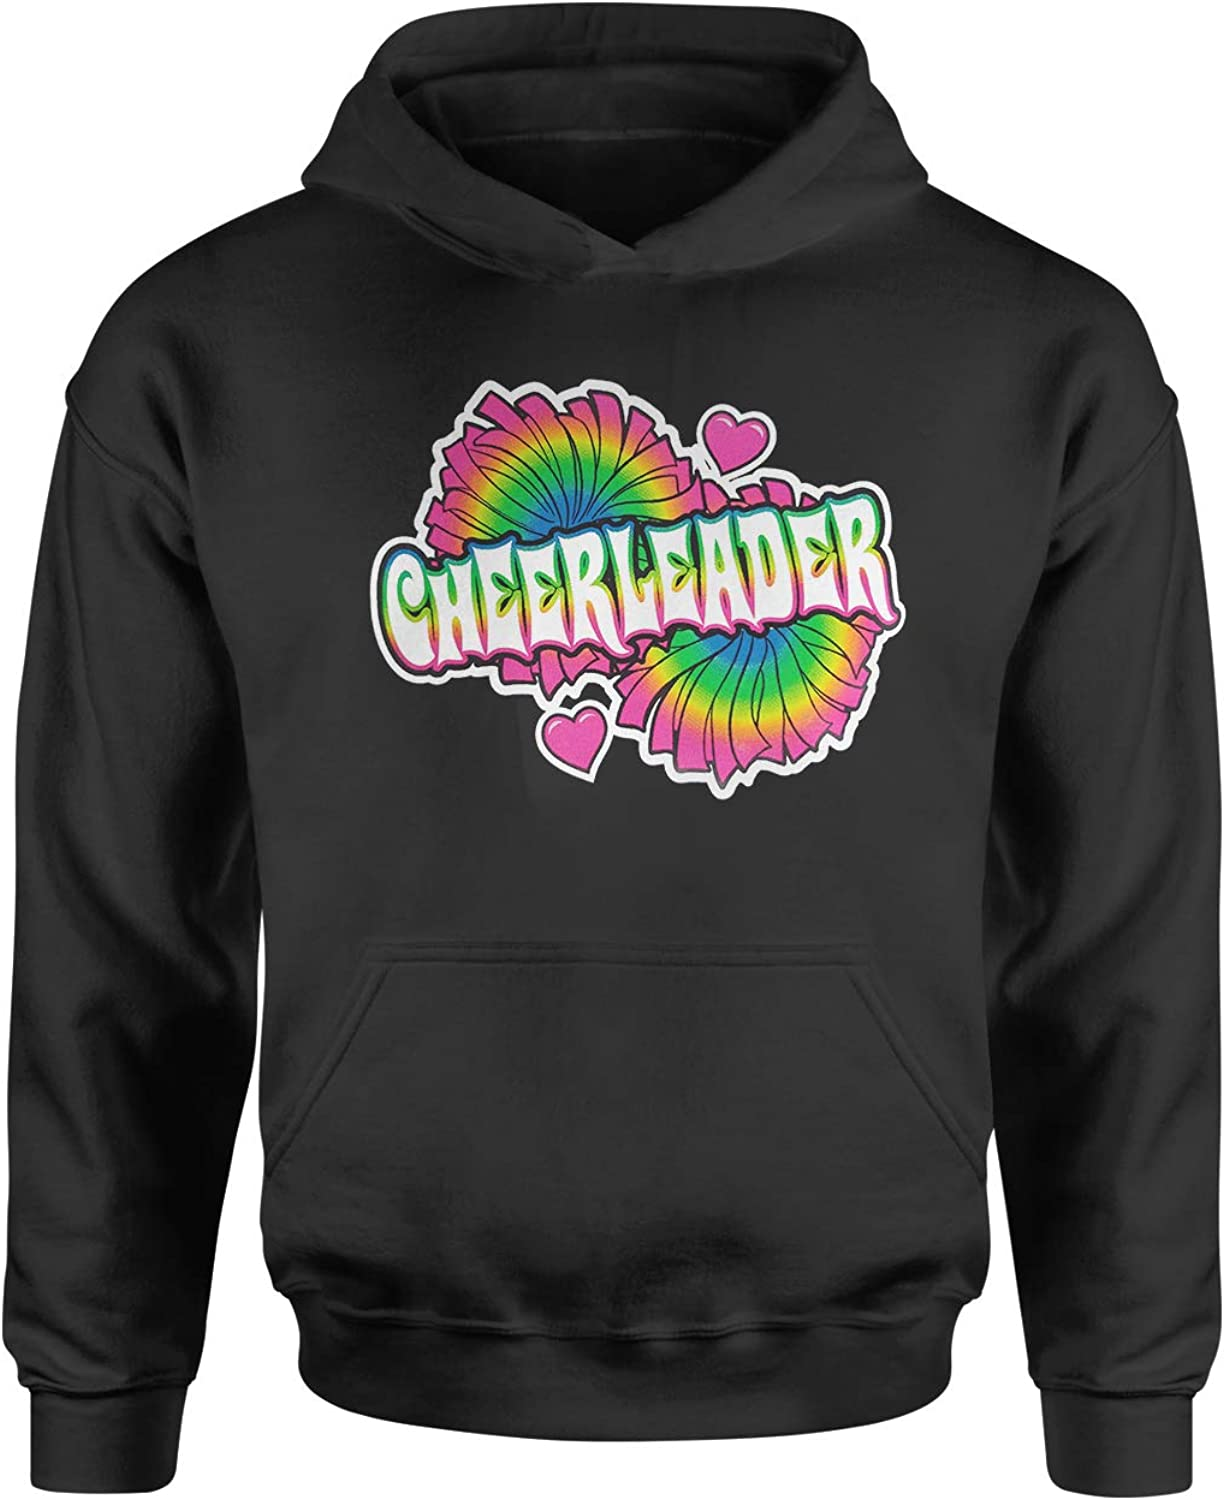 Expression Tees Cheerleader Youth-Sized Hoodie